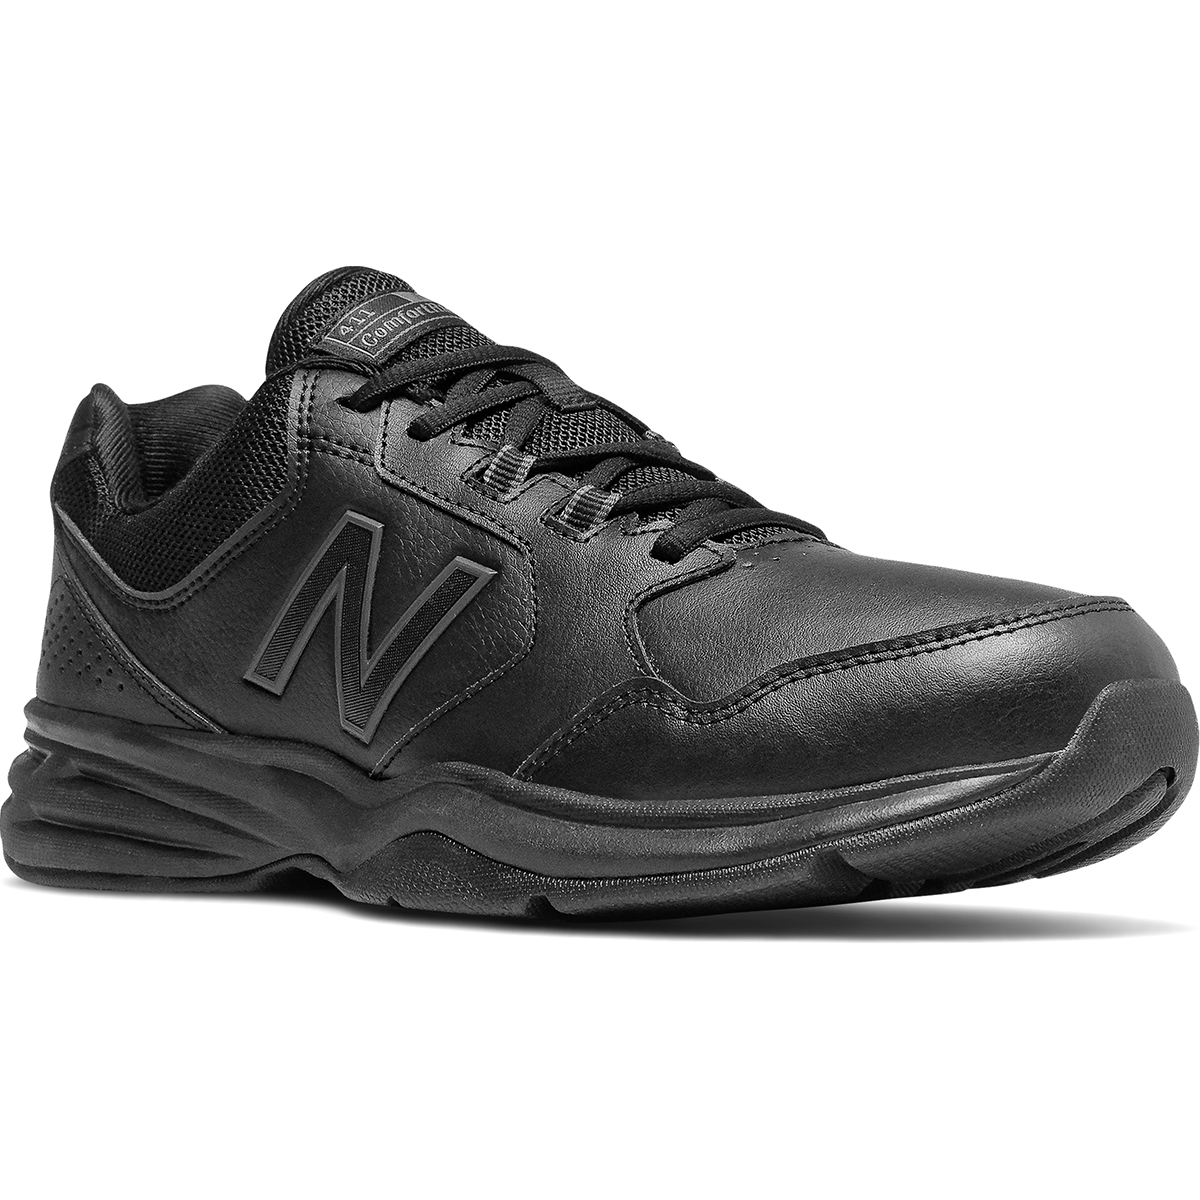 New Balance Men's 411 Walking Shoes - Black, 9